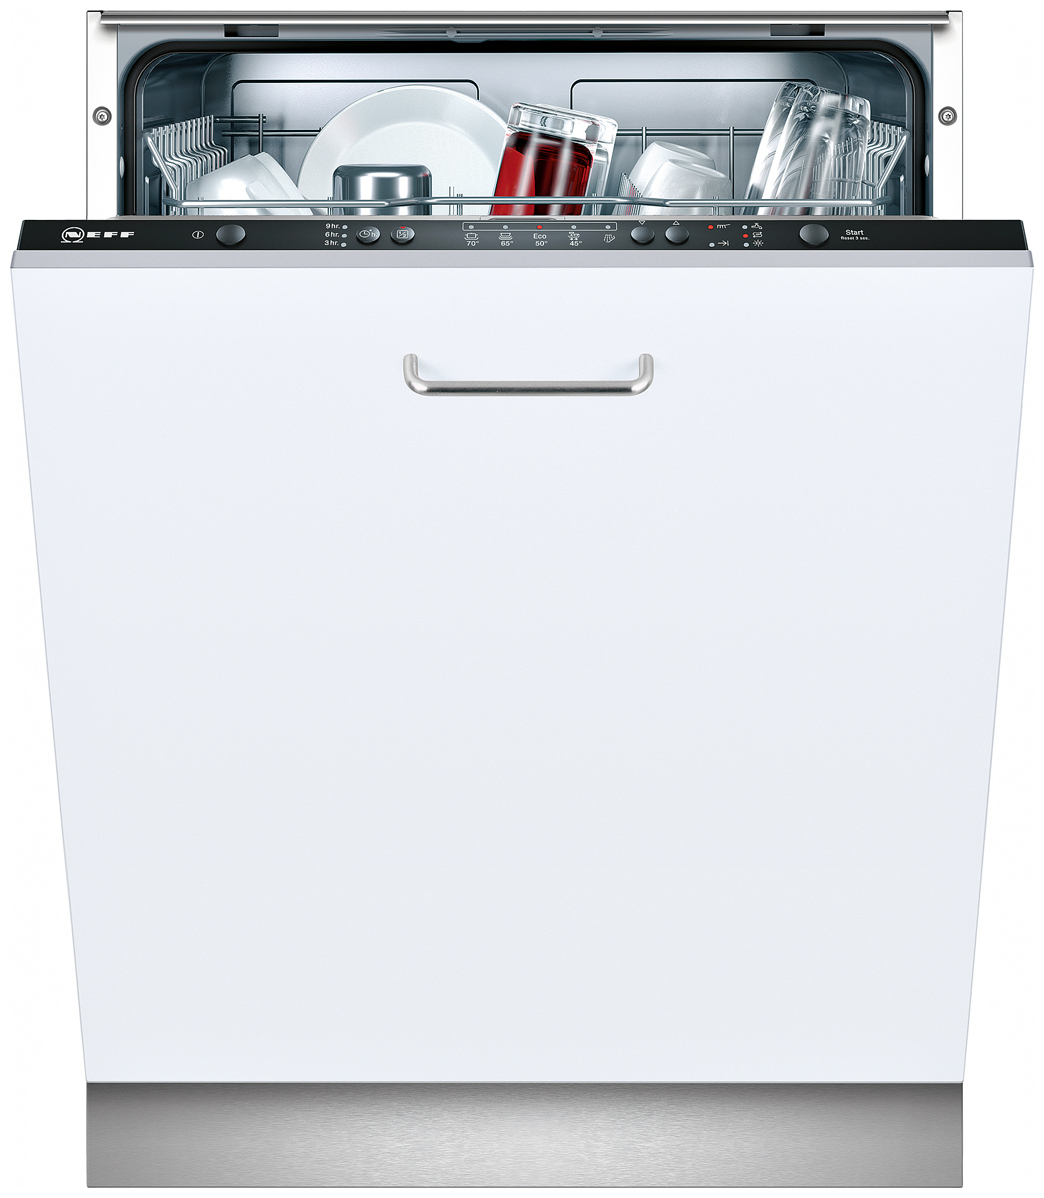 Uncategorized Boots Kitchen Appliances Free Delivery kitchen appliances i cookers ovens washing machines freezers neff s51e50x1gb dishwasher free delivery